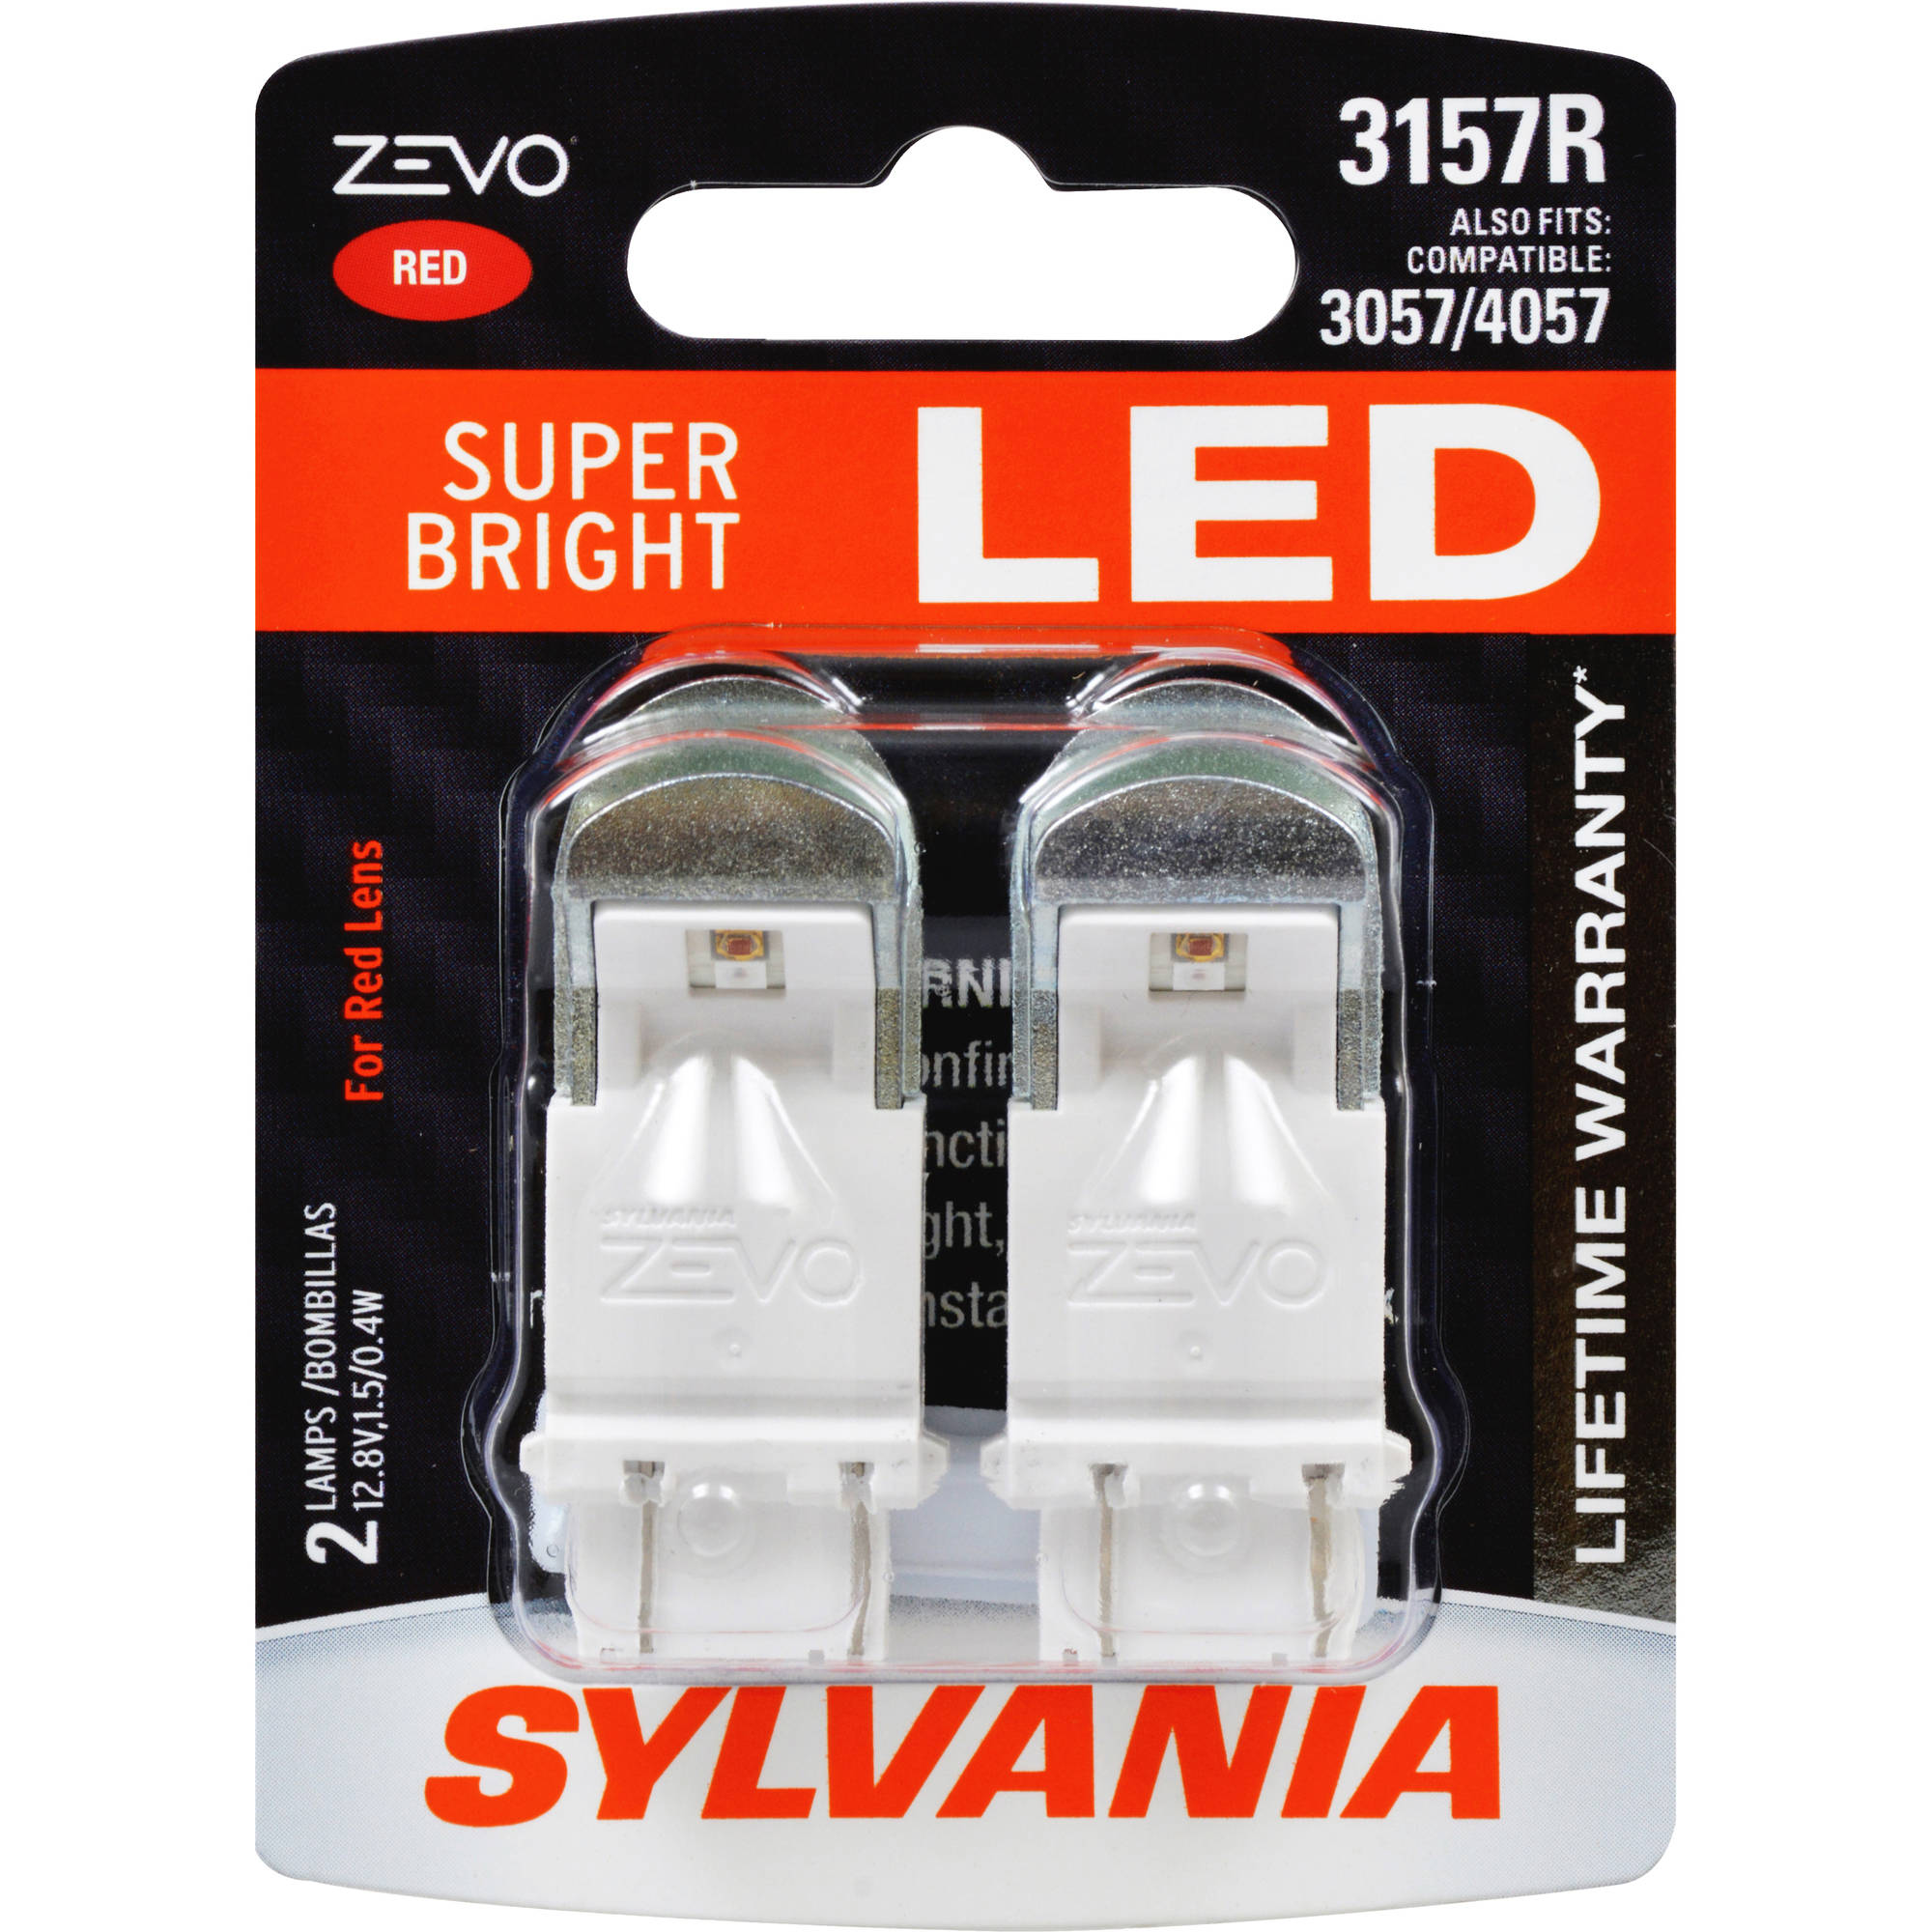 3157R ZEVO LED Bulbs, 2-Pack